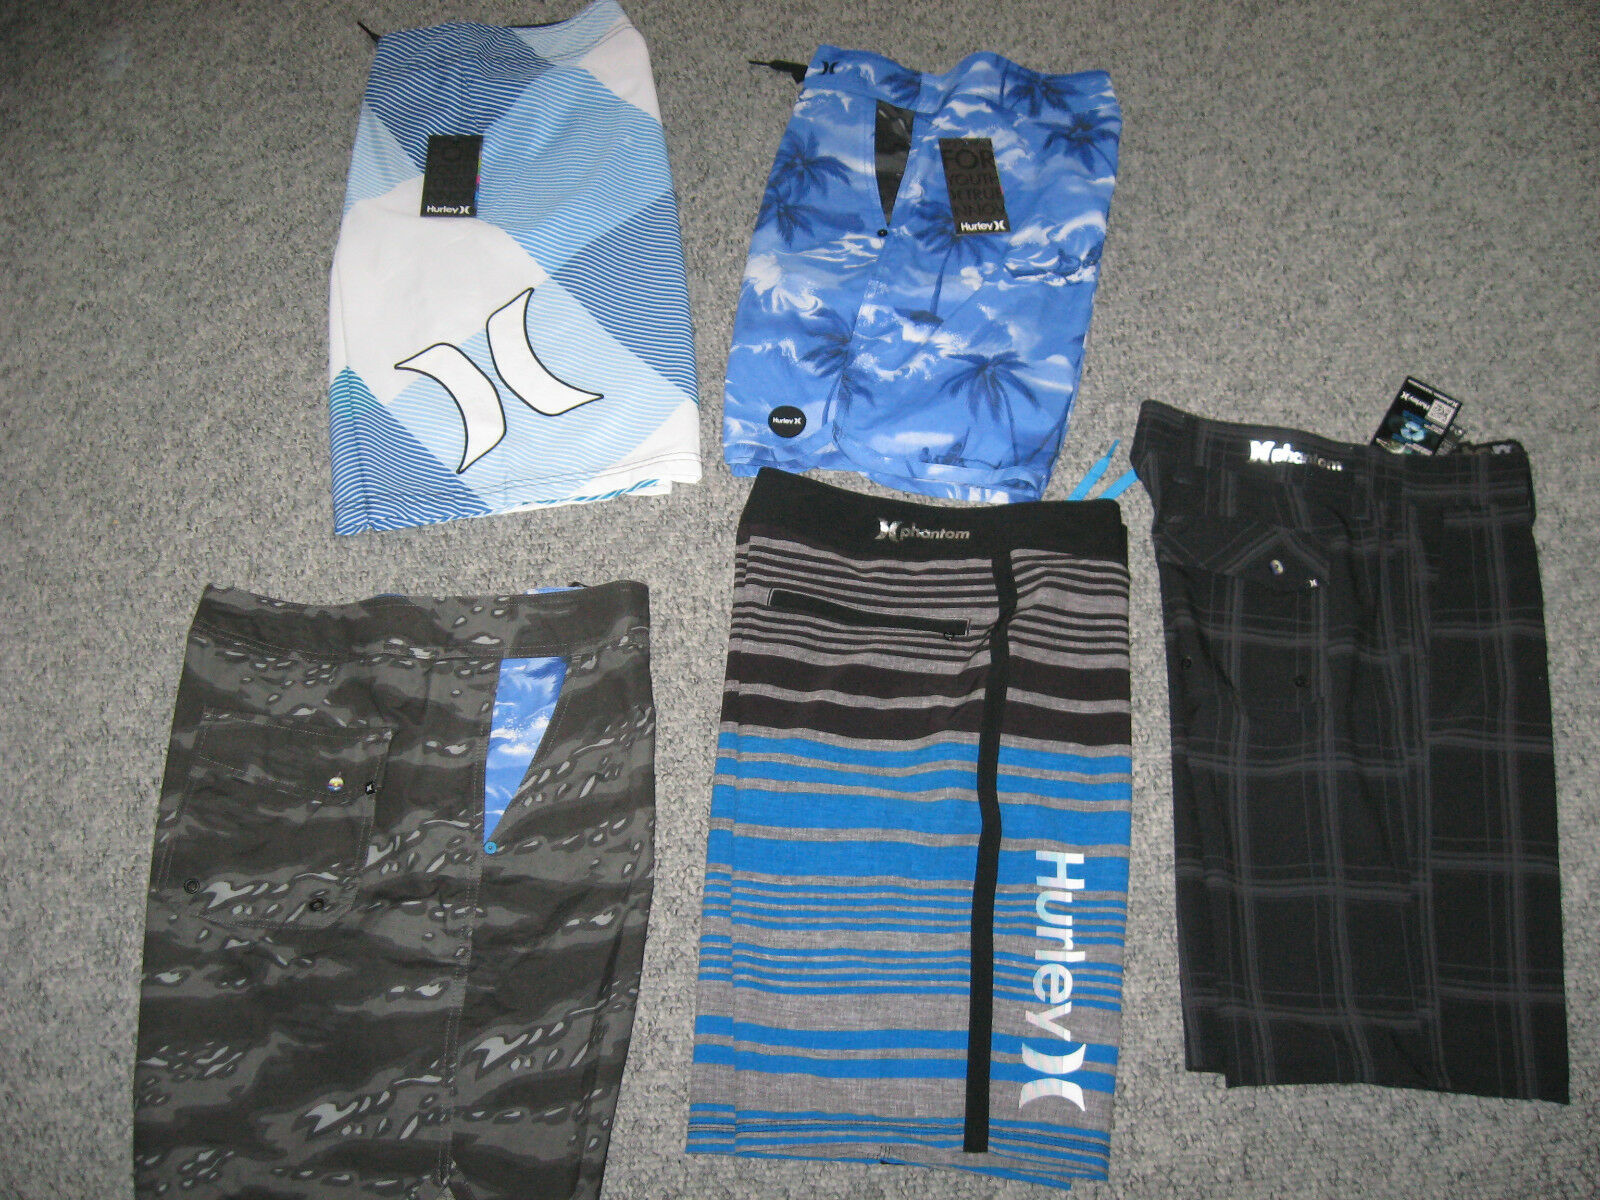 HURLEY Men's Board Short,Gym Short Or Casual Short, Many styles & colors, NWT